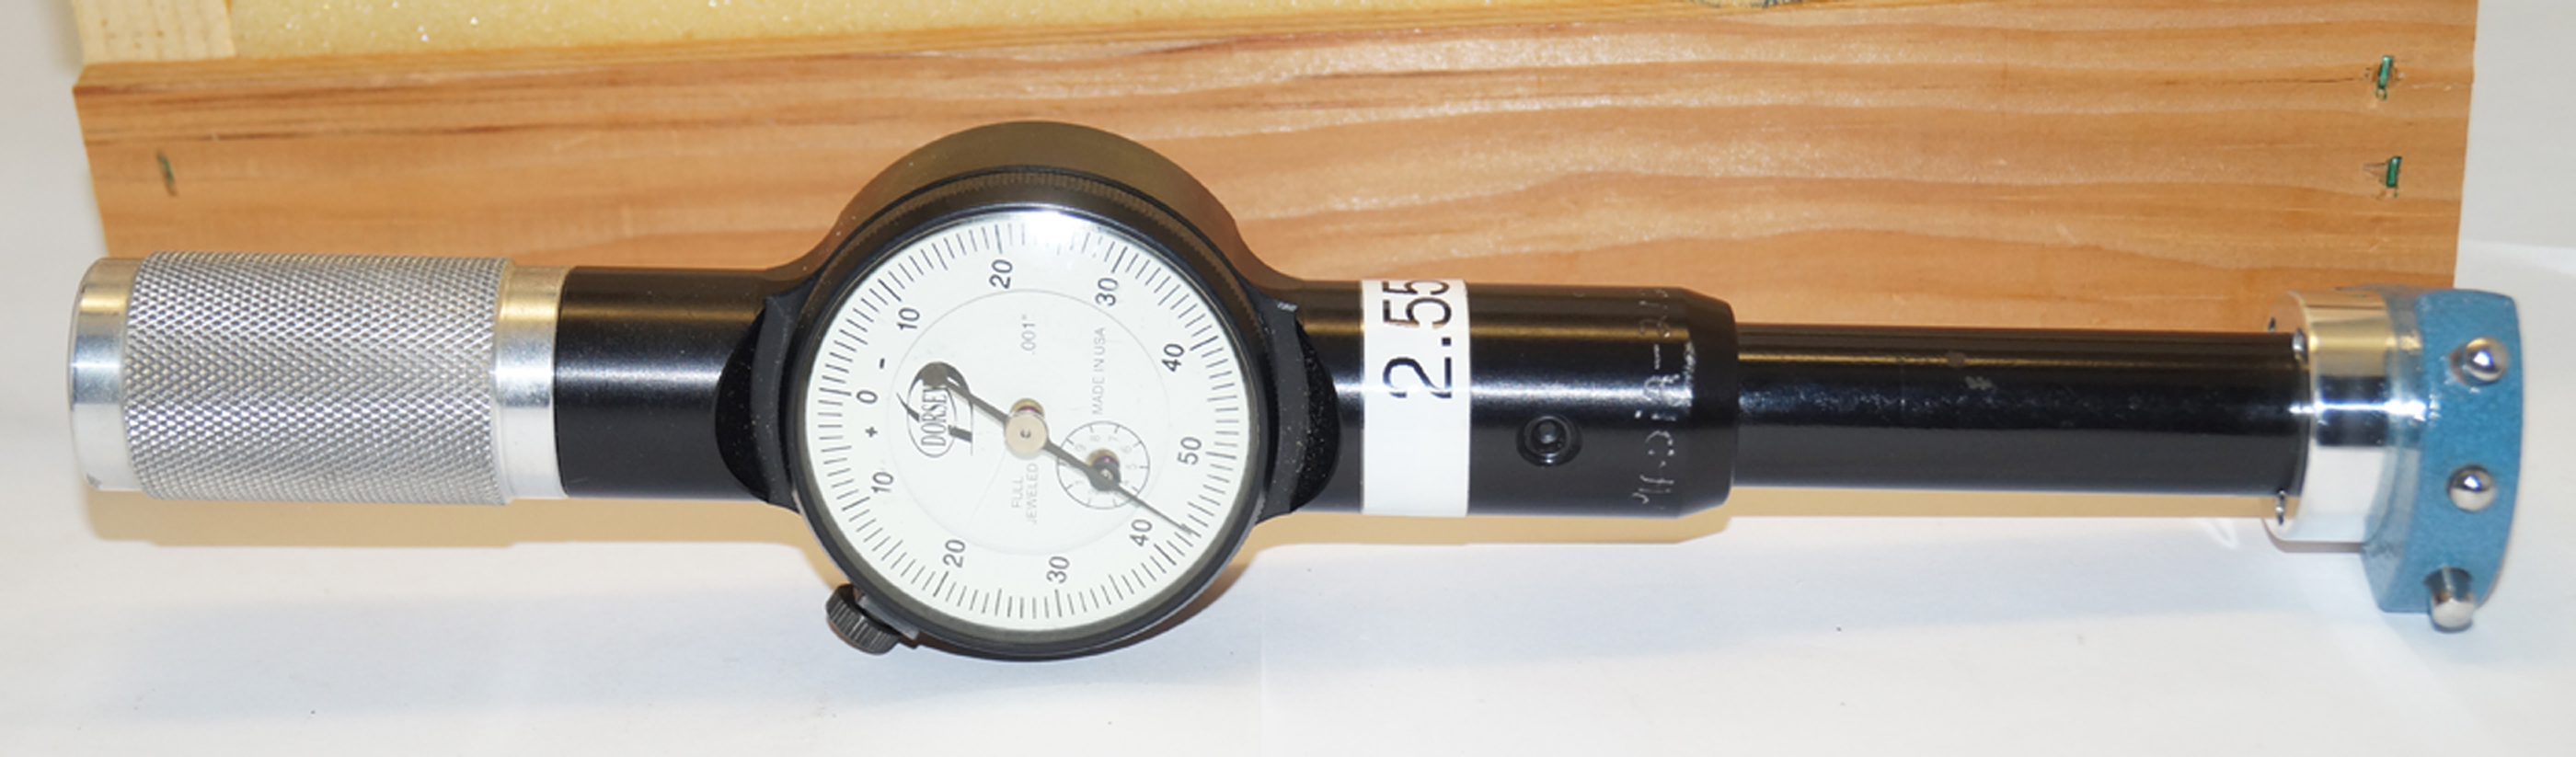 Bore Gage, No. 4 Dorsey Standard Gage 2.55 Dial